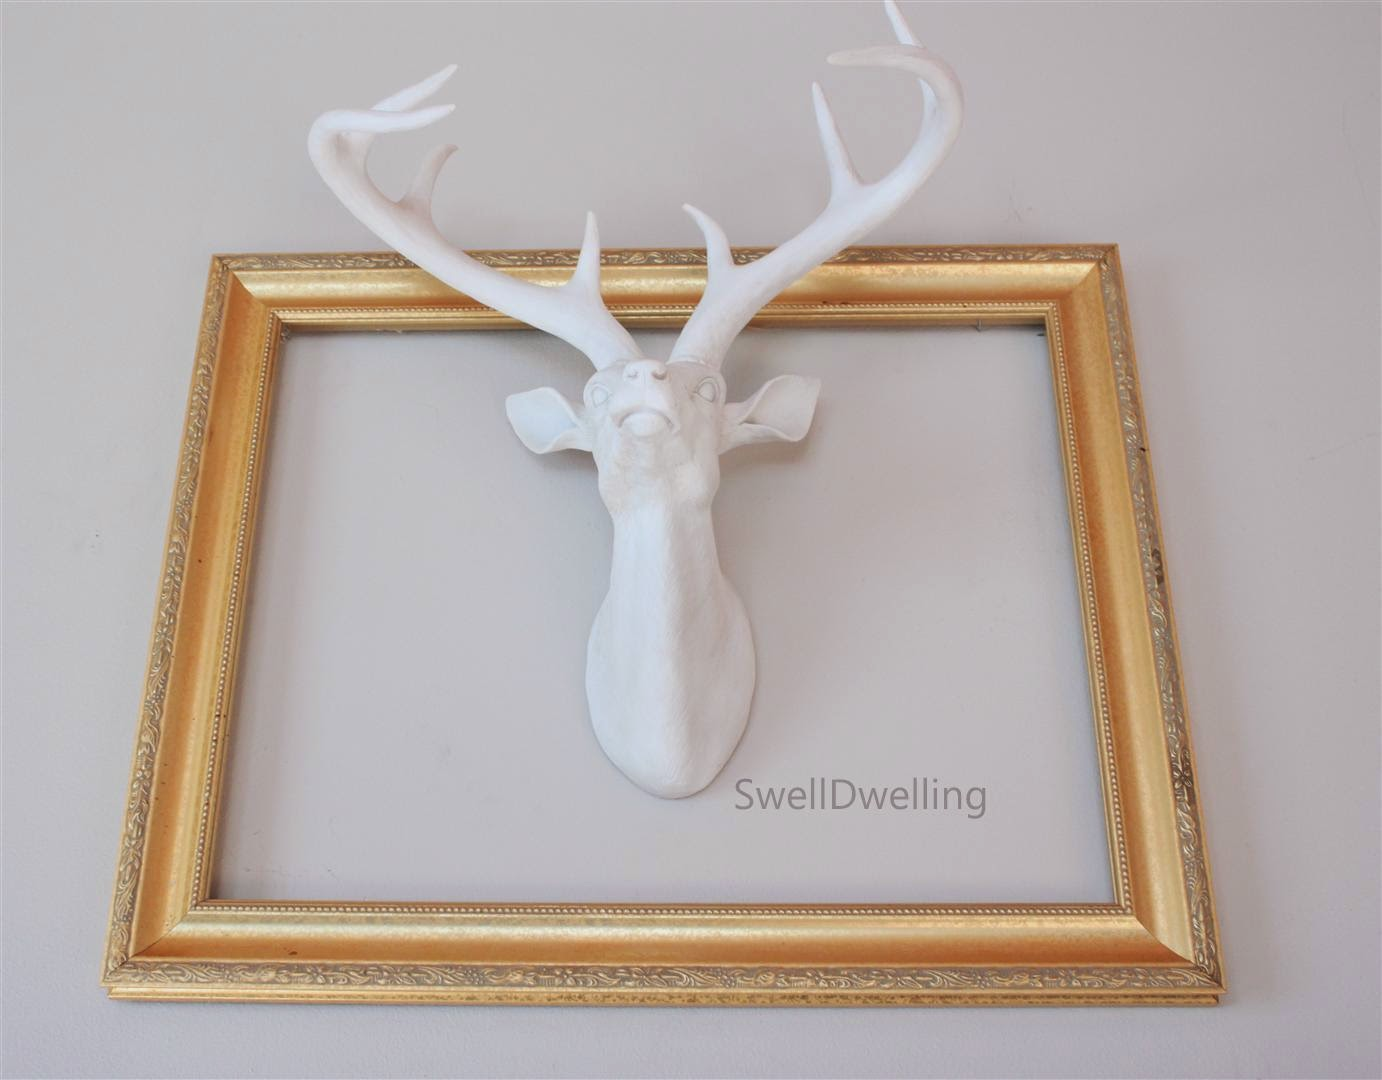 Swell Dwelling: Fauxidermy - White Deer Head